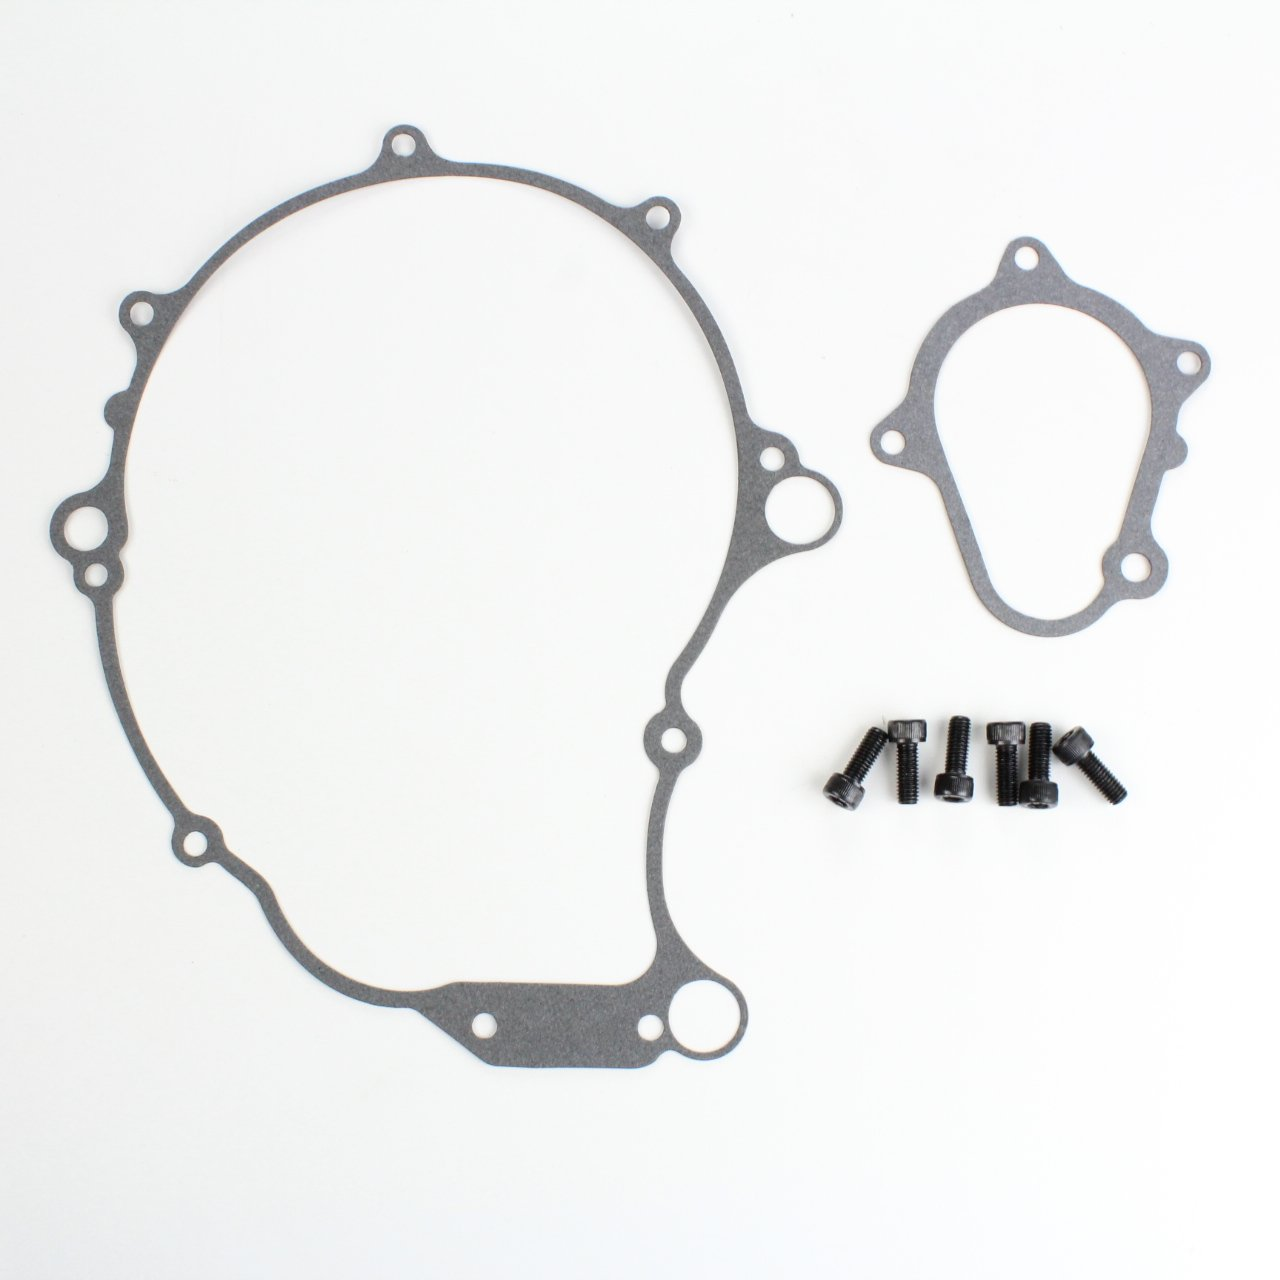 Crankcase Gaskets & Starter Clutch Screw Kit Set Combo 2001-2005 Yamaha Raptor 660R